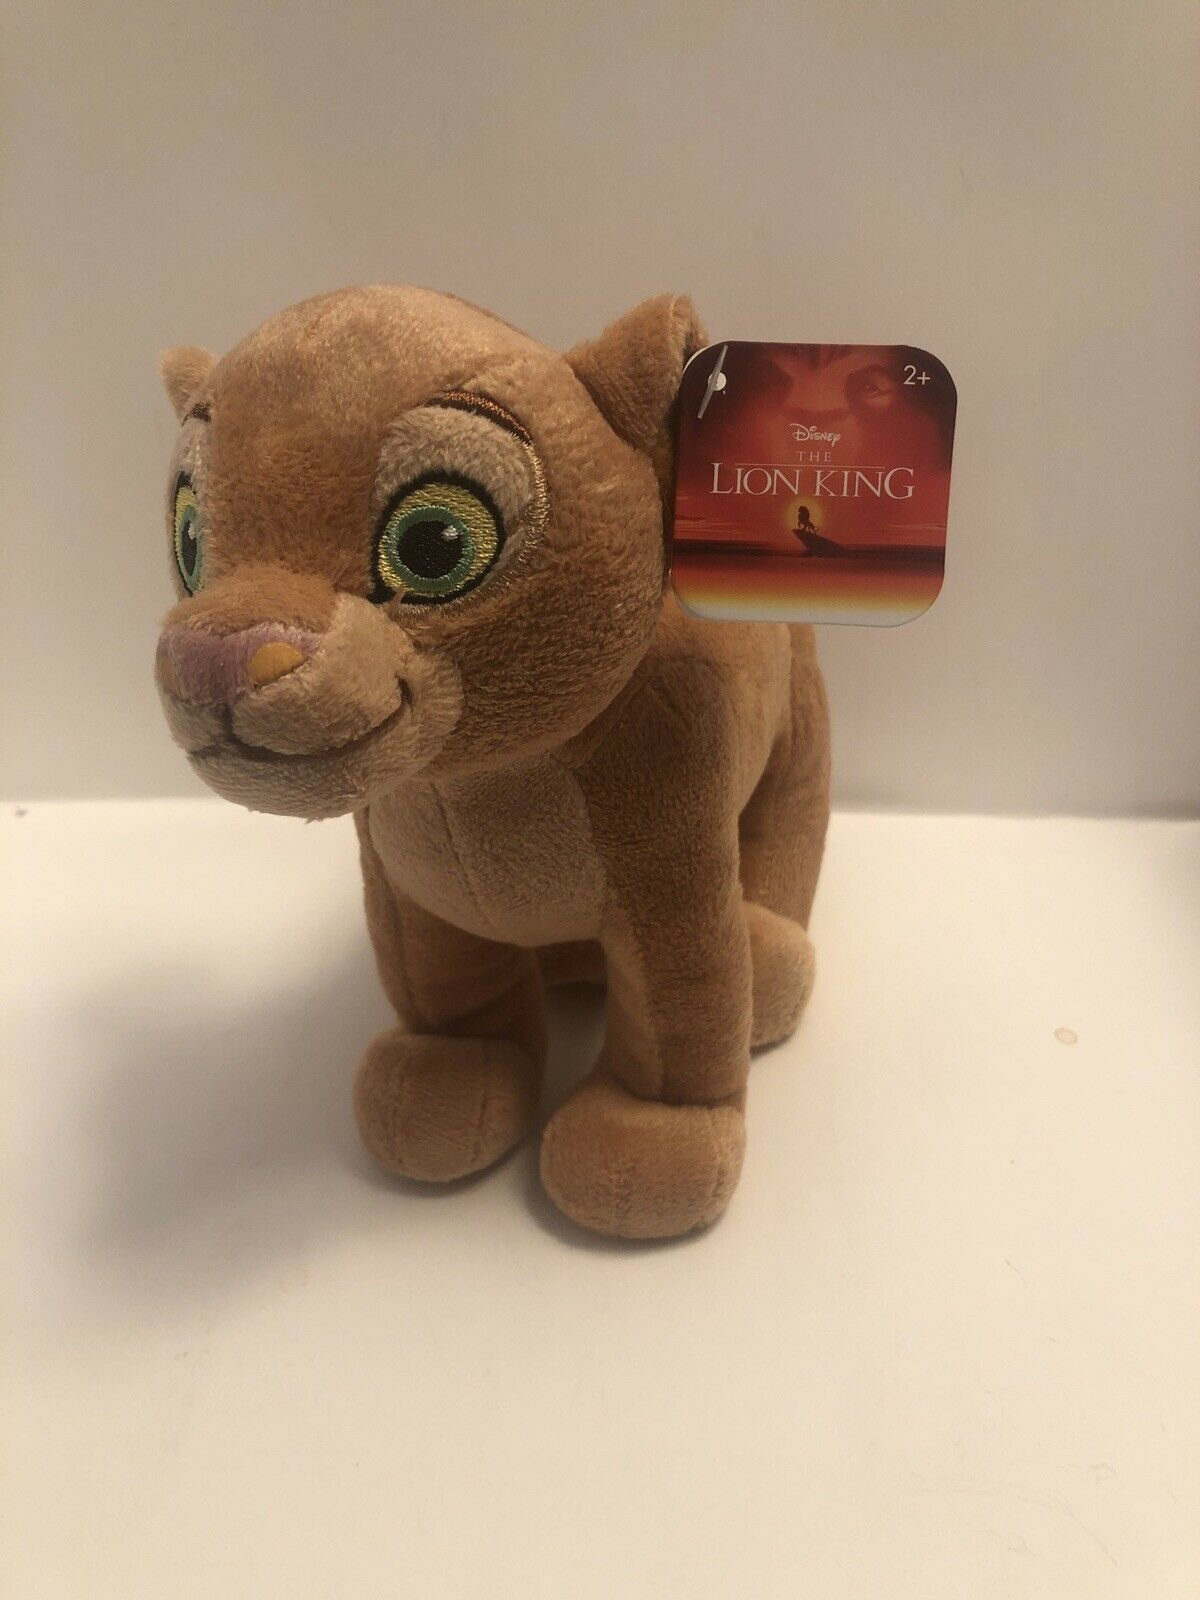 "NWT Disneys The Lion King 2019 Nala Plush Toy by Just Play 7"" Stuffed Animal NEW - $9.99"